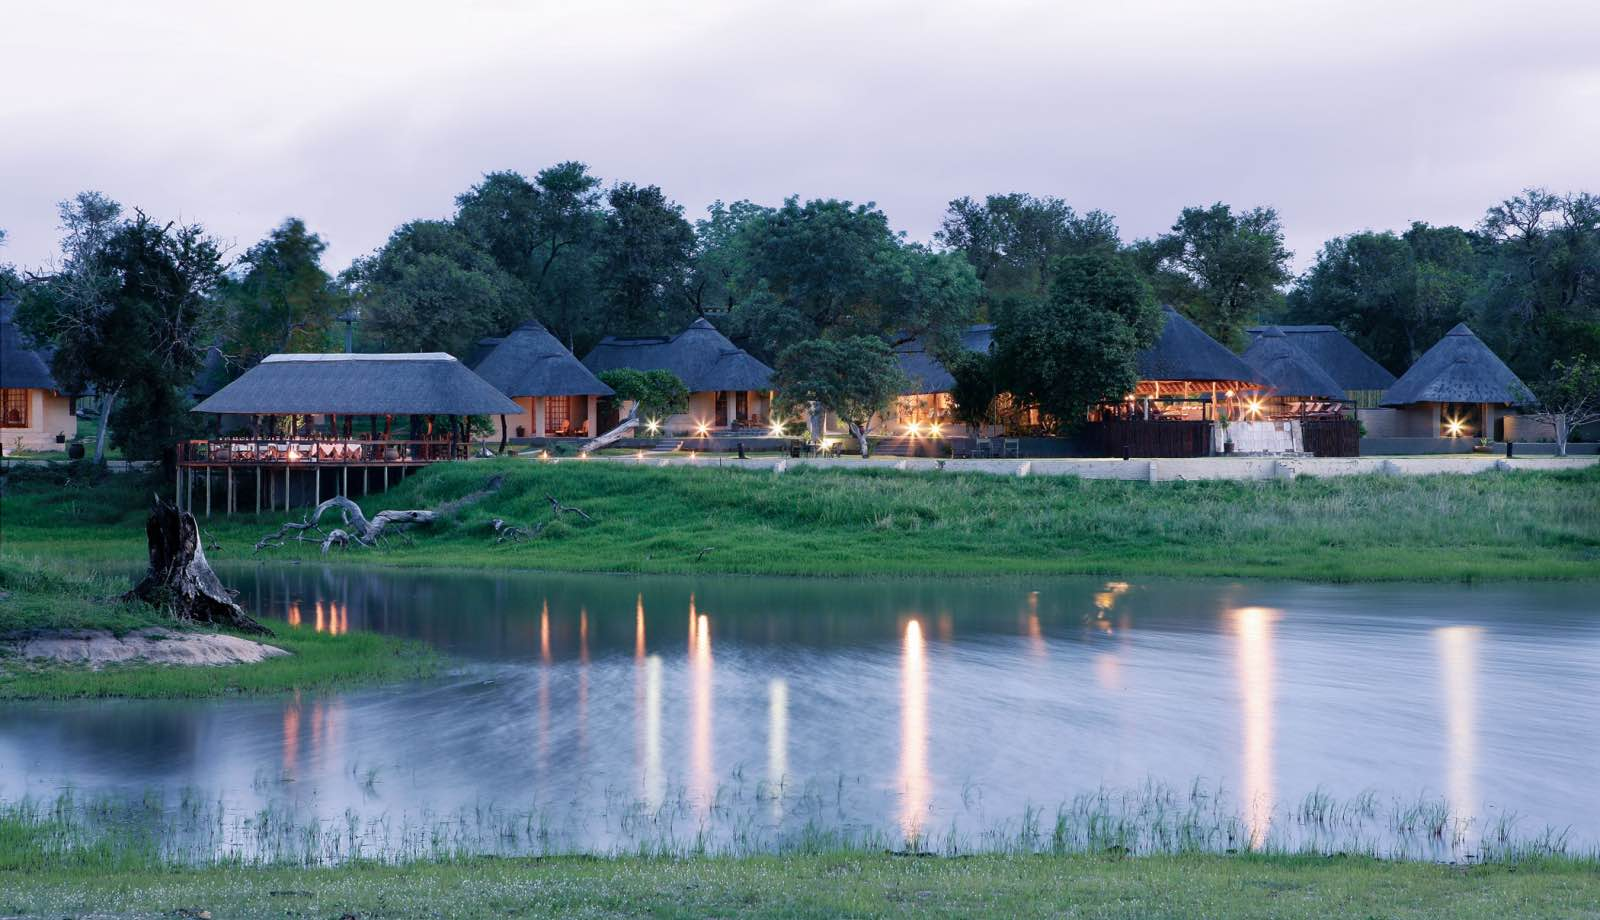 Arathusa Safari Lodge seen from the opposite side of the waterhole